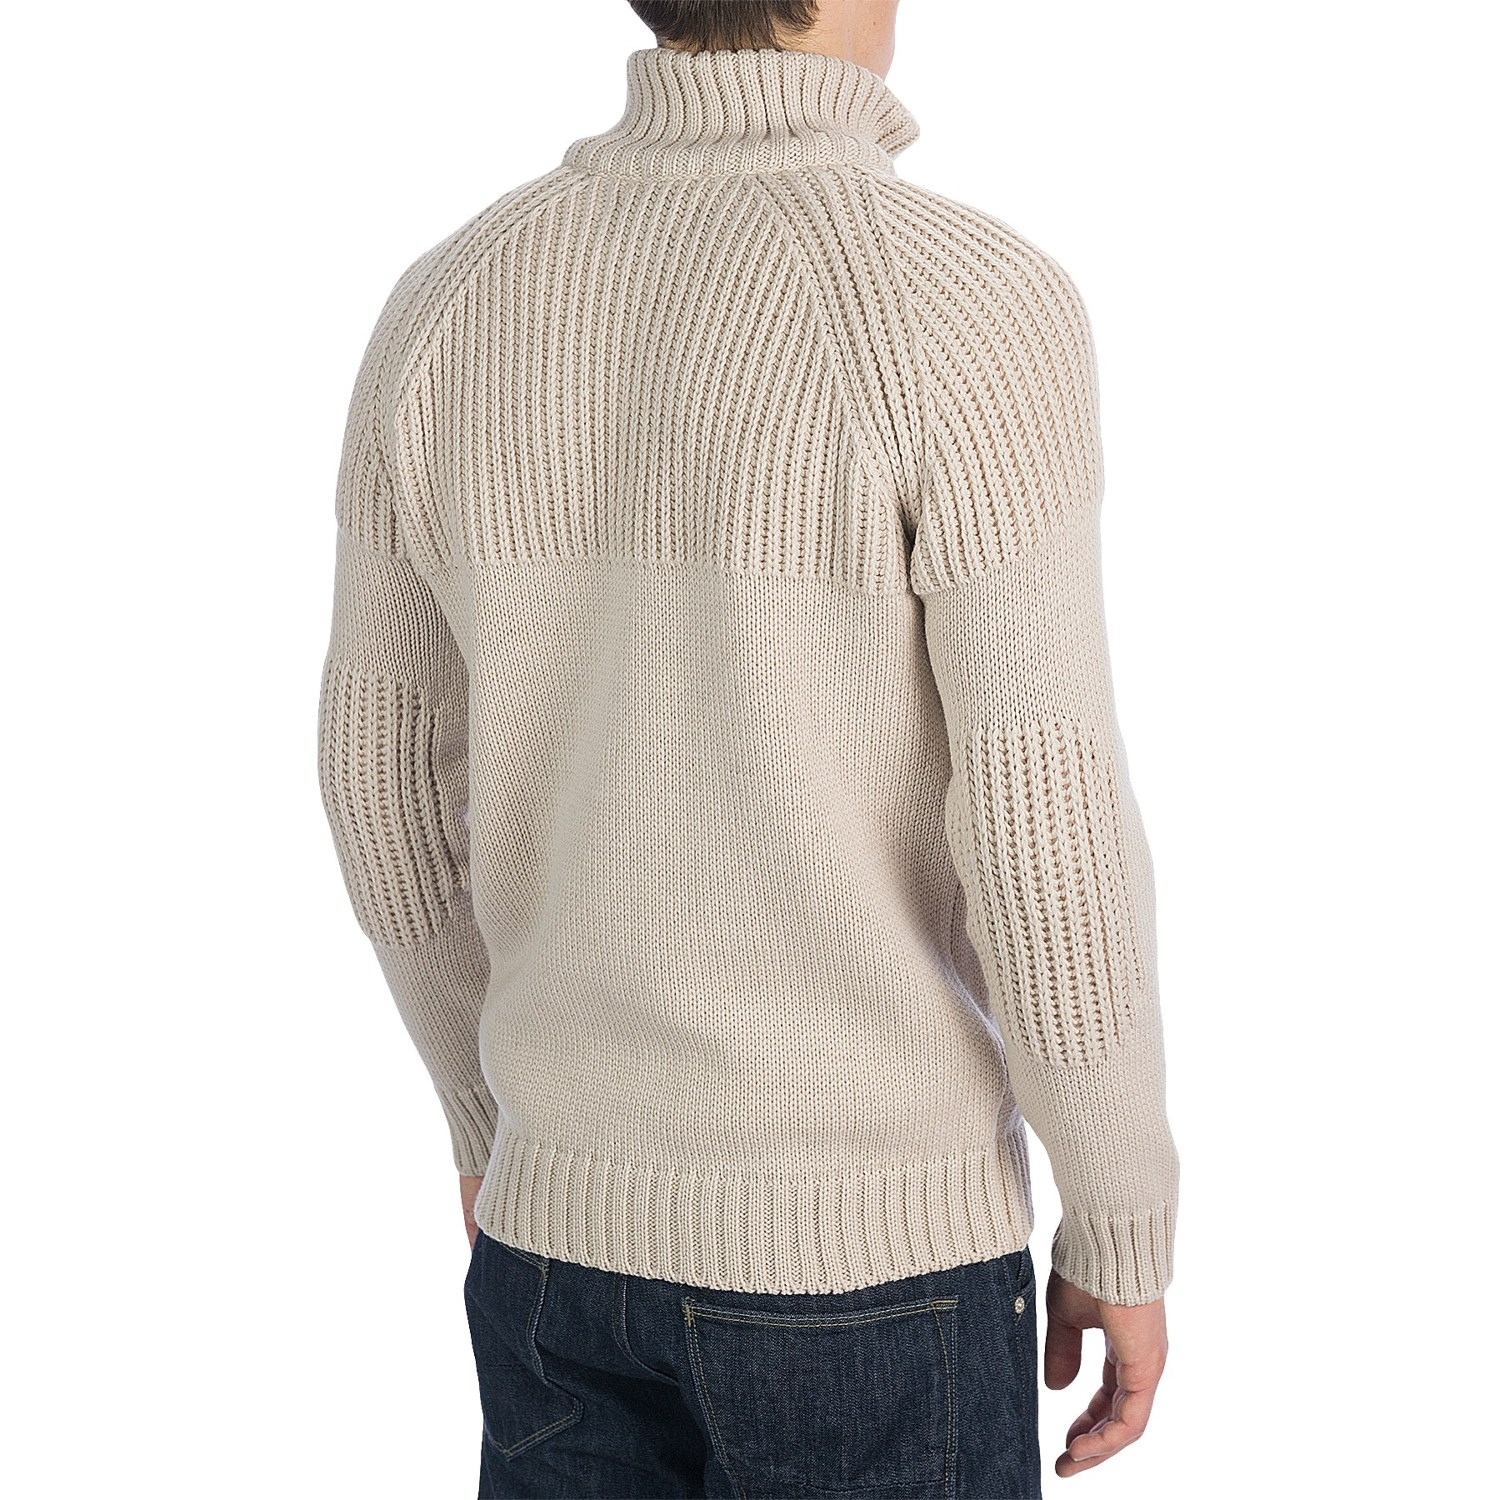 Your go-to chic merino wool sweater awaits at Banana Republic. Shop soft luxe merino wool sweaters for men and women.